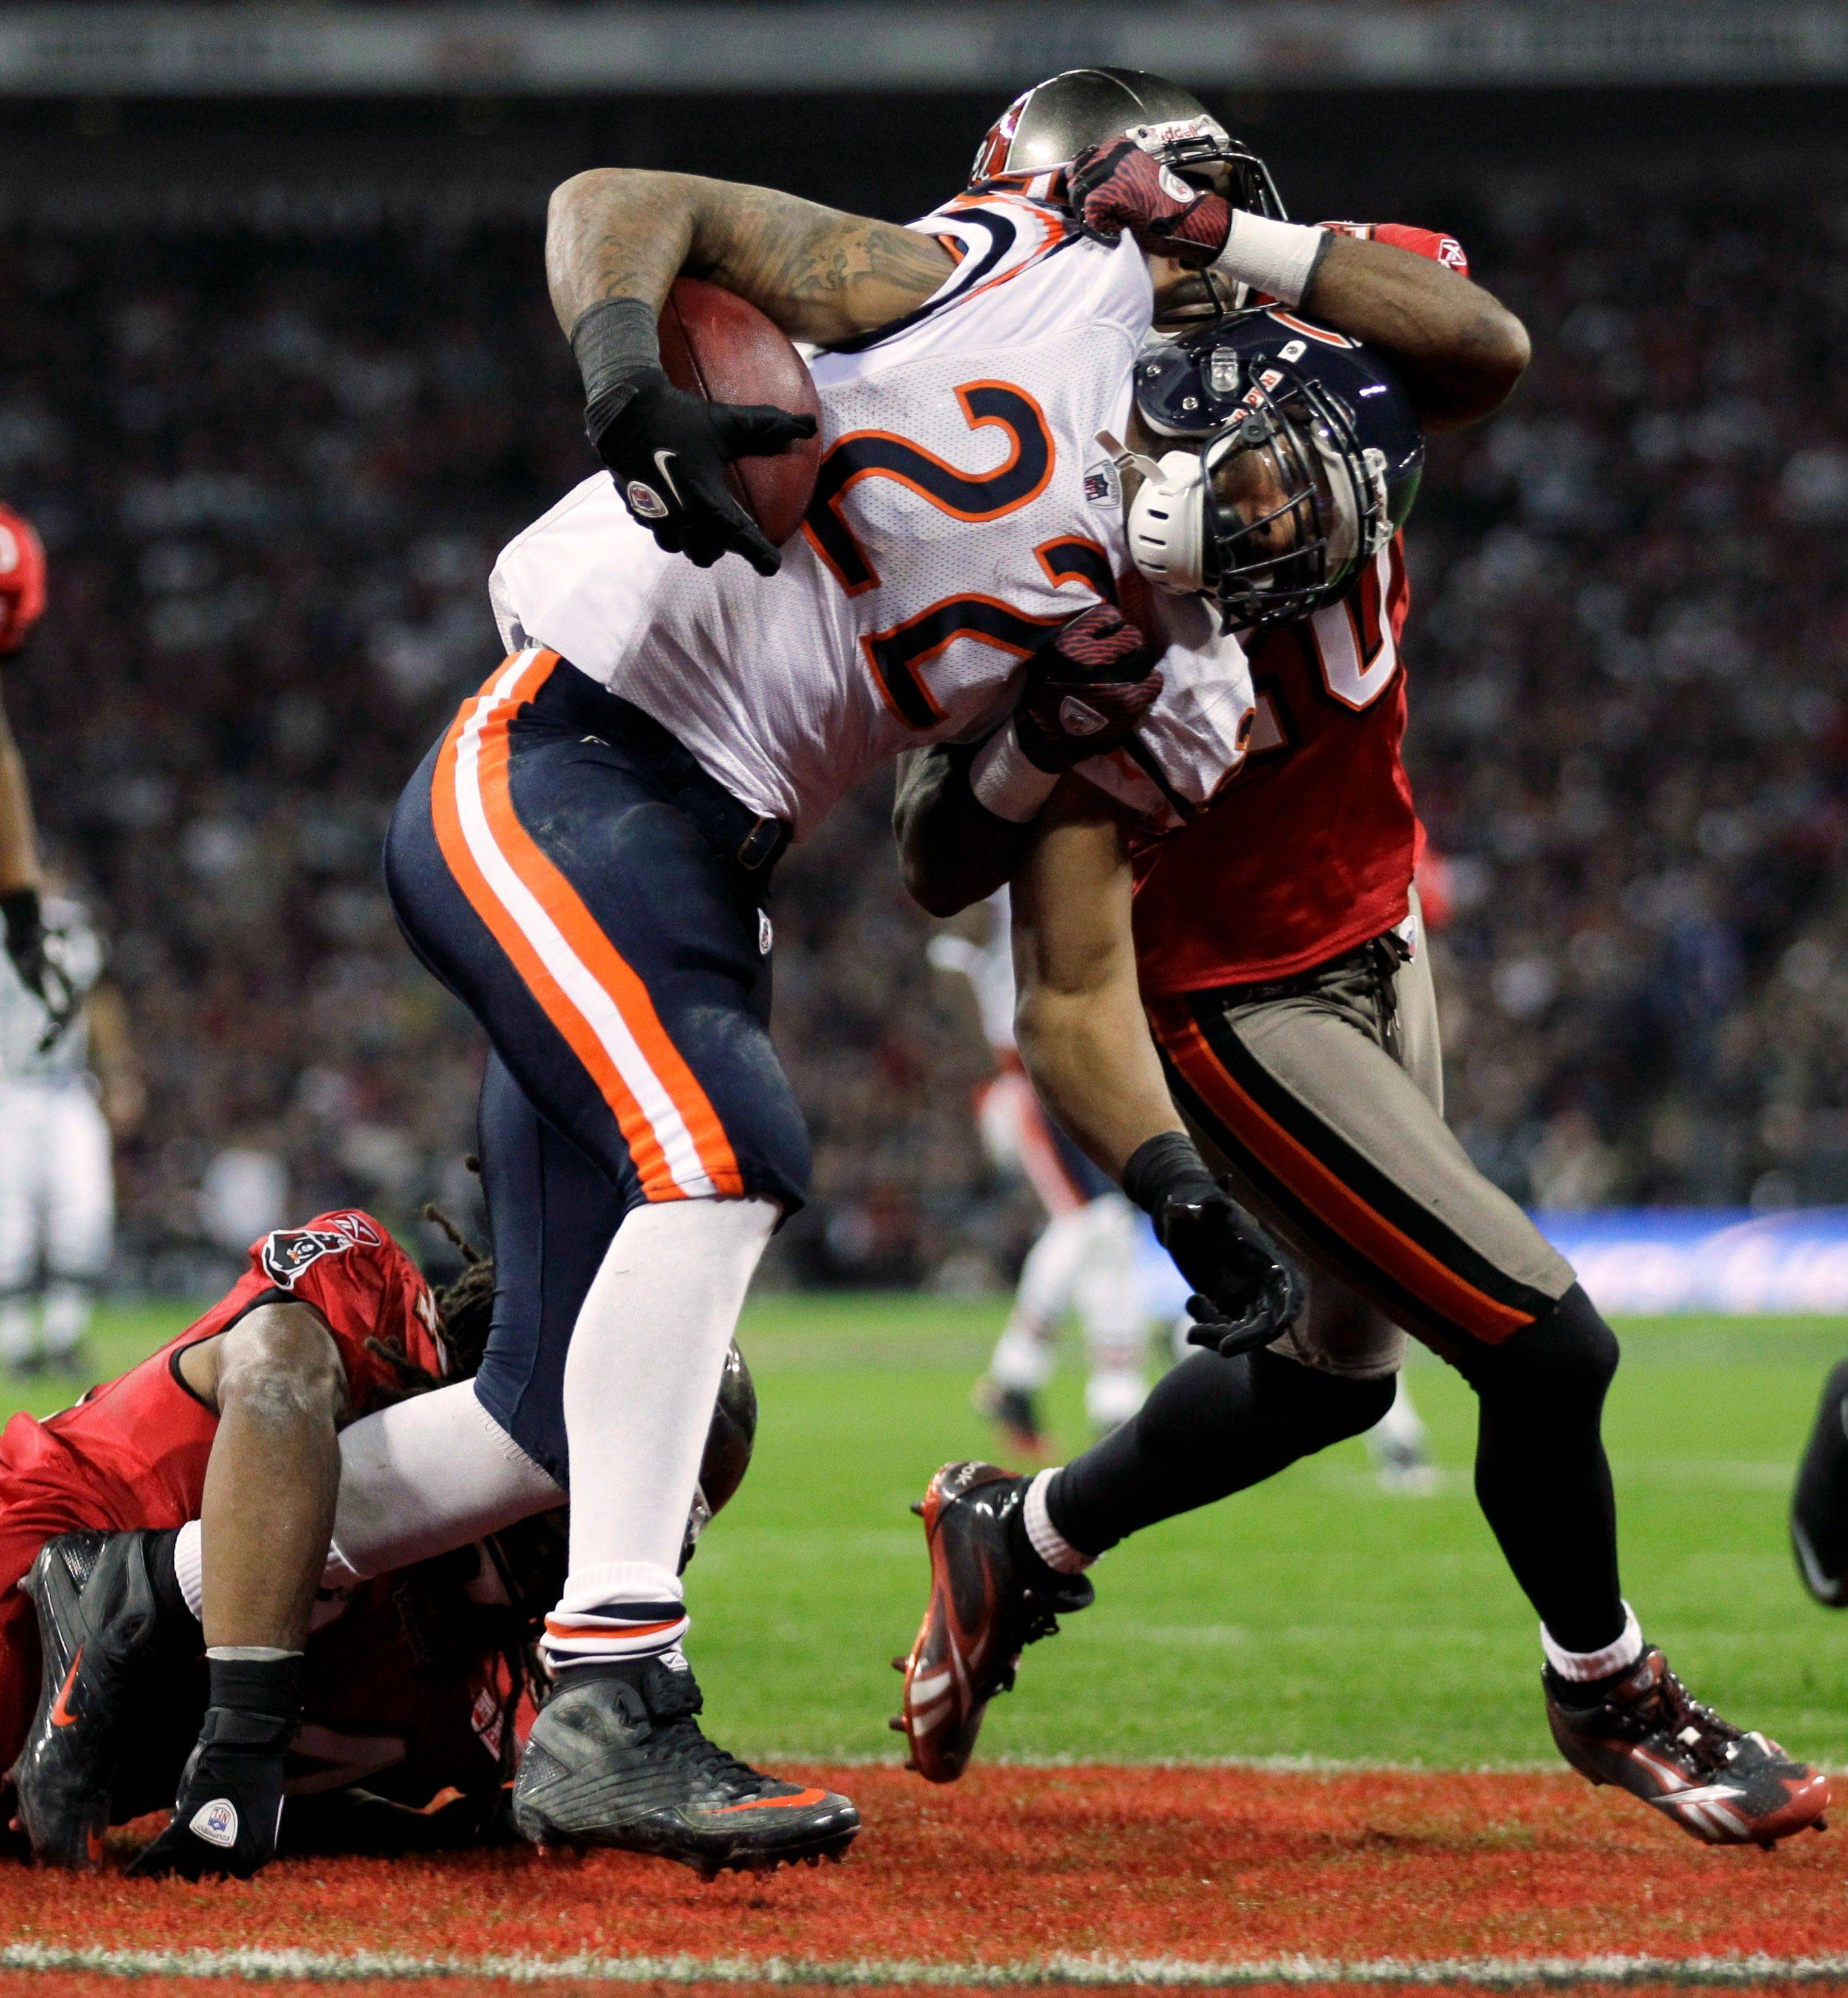 Chicago Bears running back Matt Forte is taken down by Tampa Bay Buccaneers cornerback Ronde Barber and Adrian Clayborn, left, in the Buccaneers' end zone for a safety during the first half.